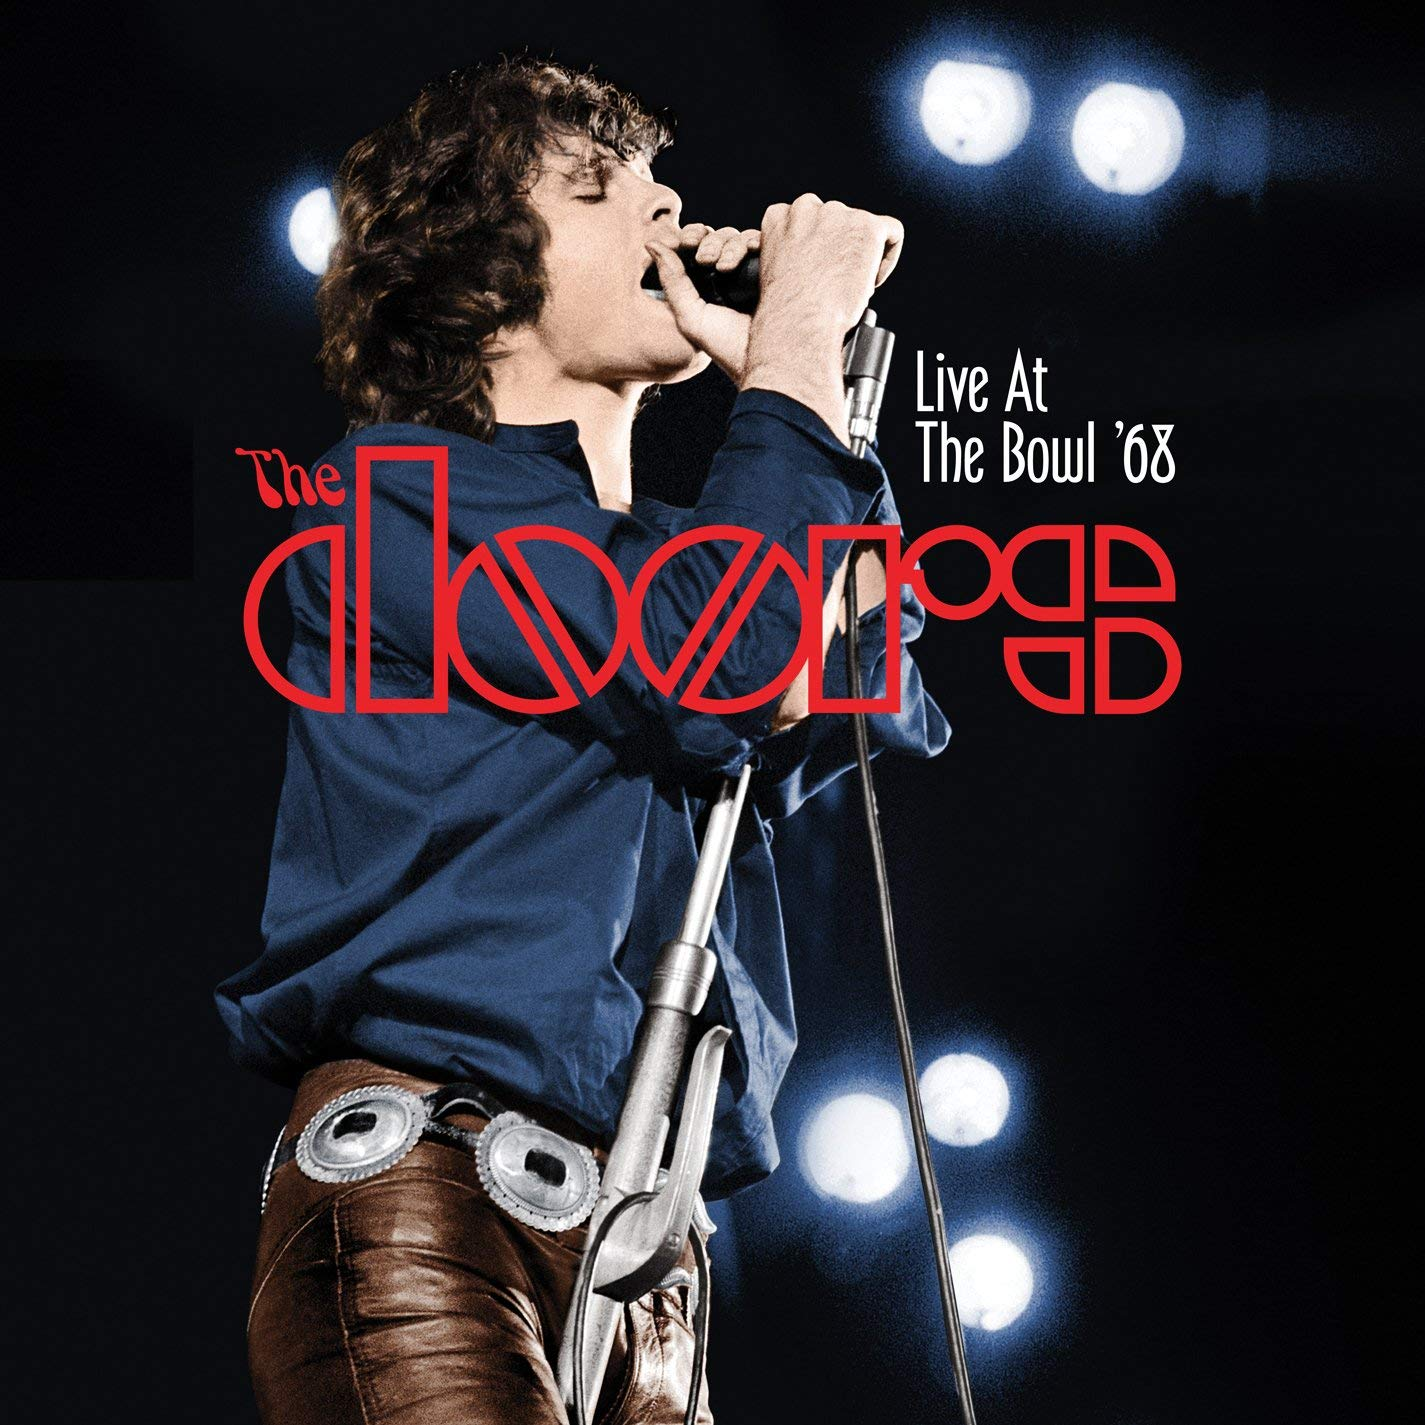 The Doors - Live At The Bowl 68 DVD - cover